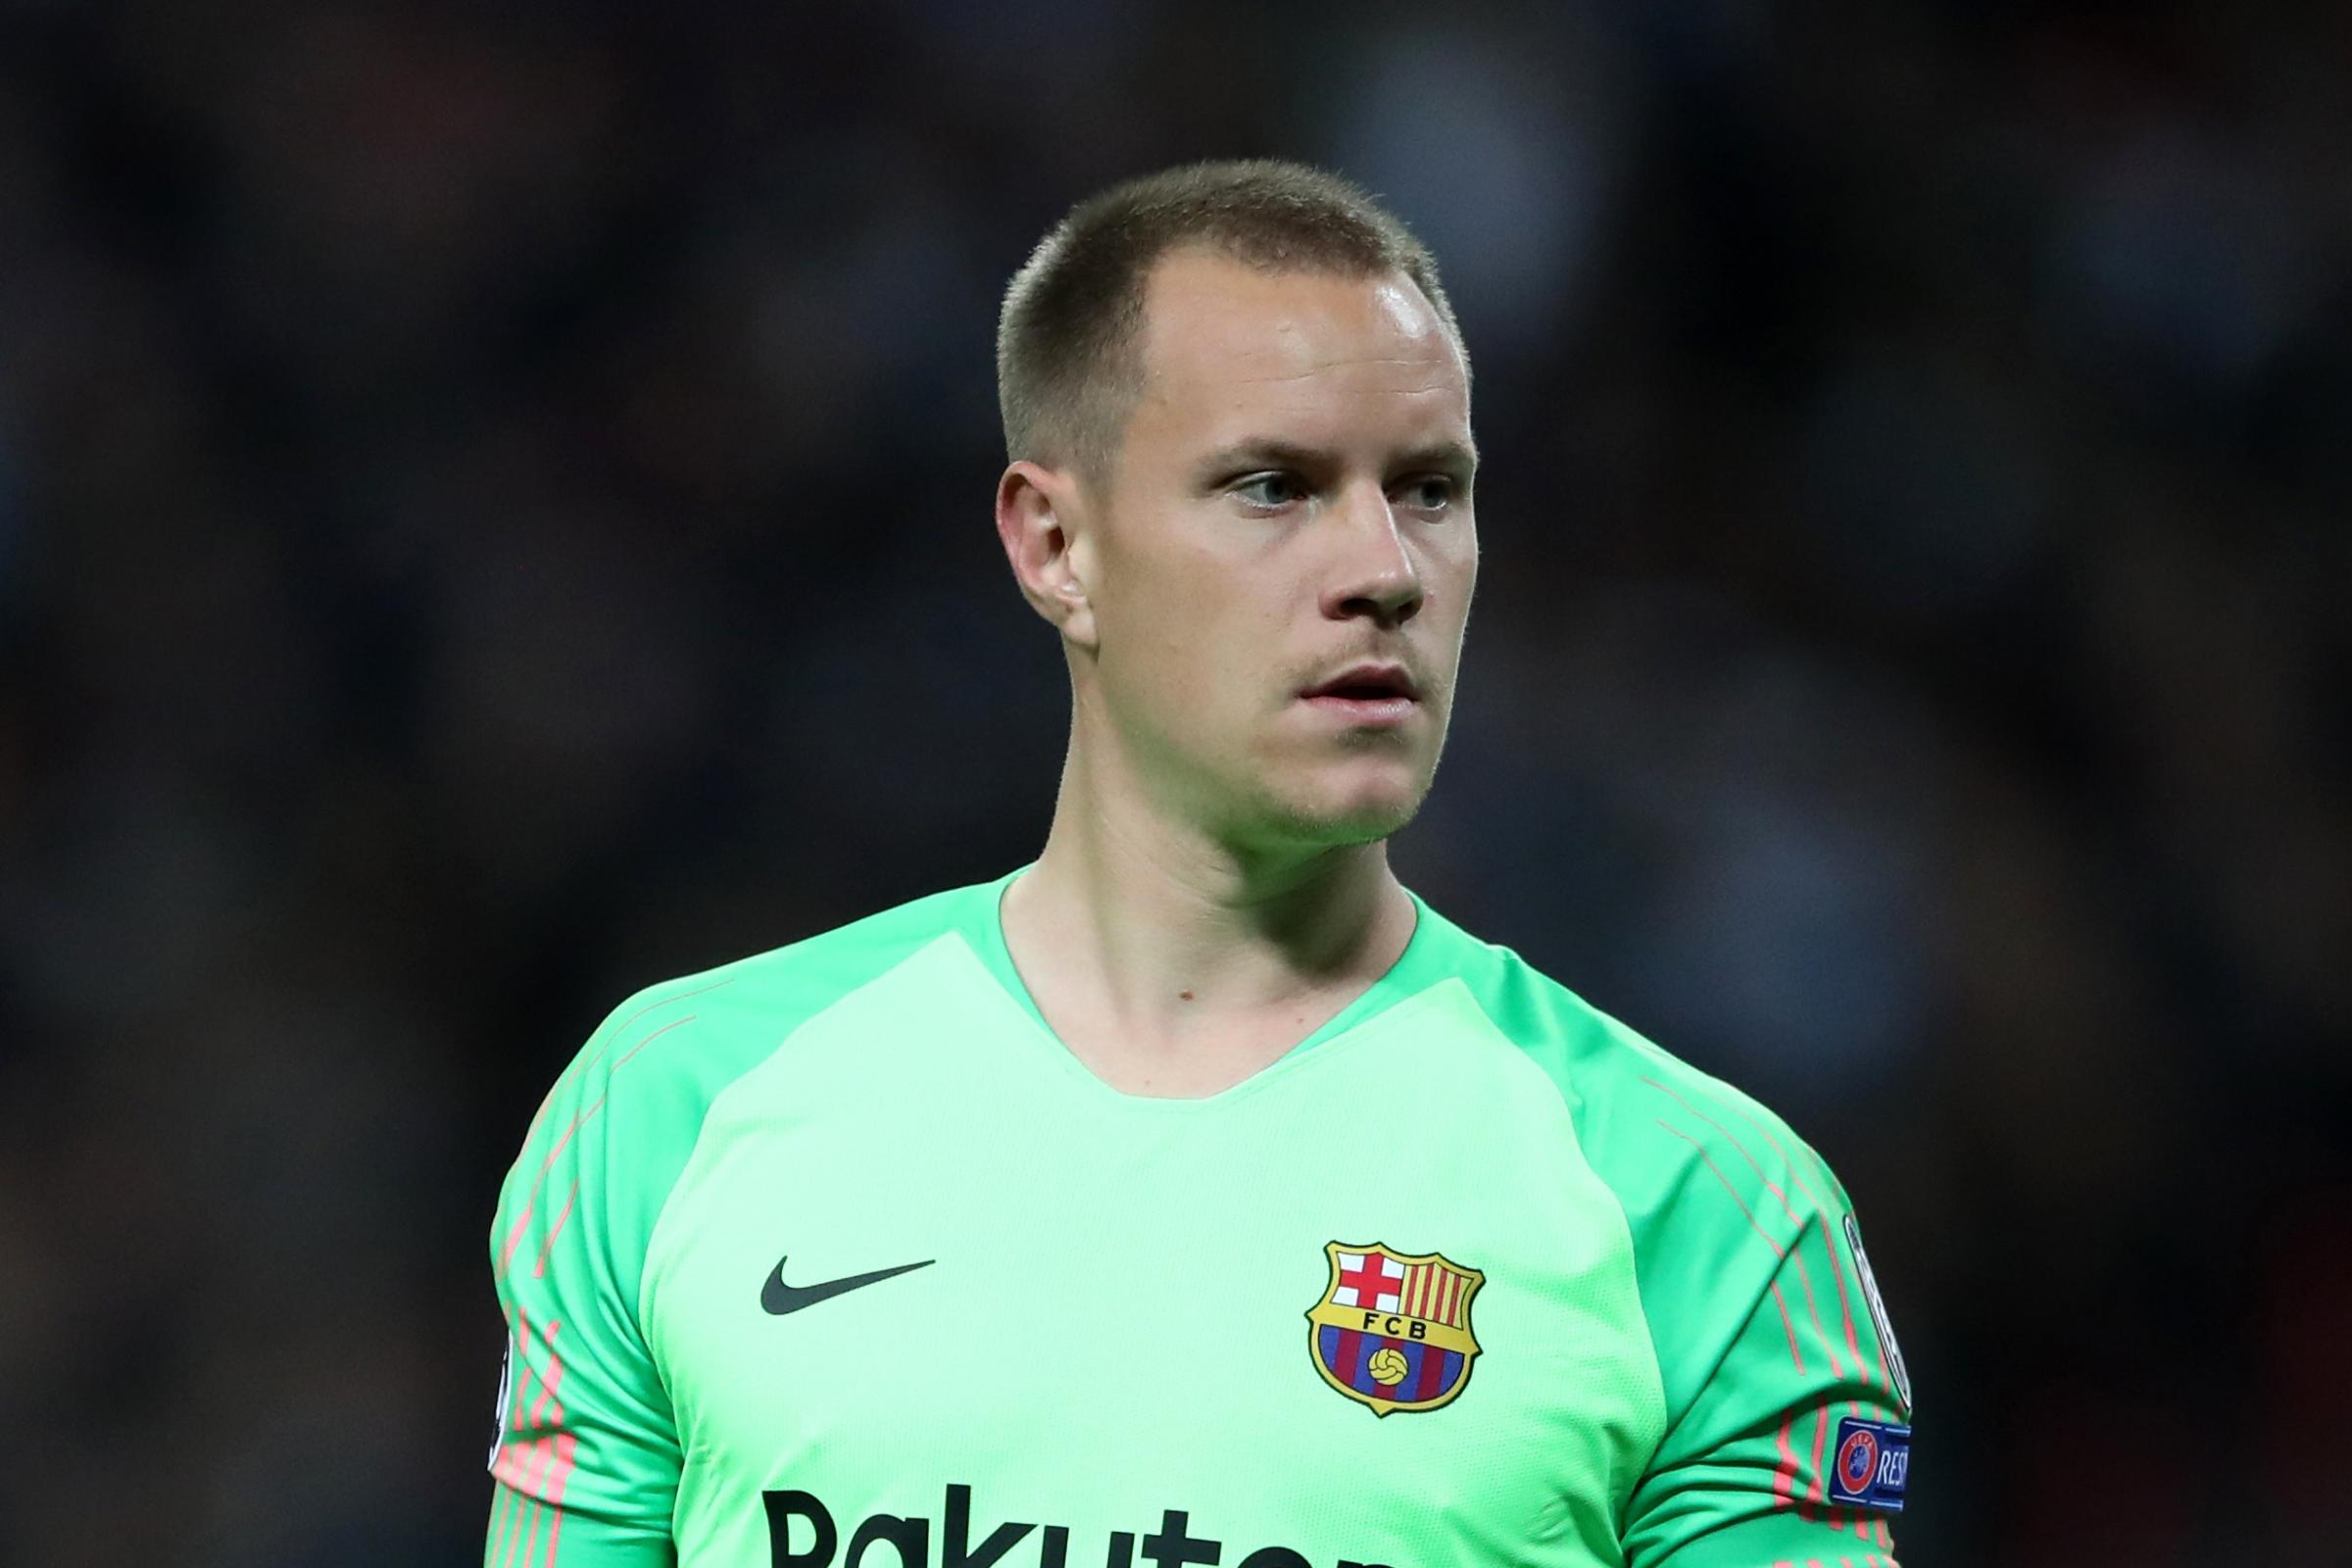 Barcelona goalkeeper Marc-Andre ter Stegen does not believe his side can try to defend their lead